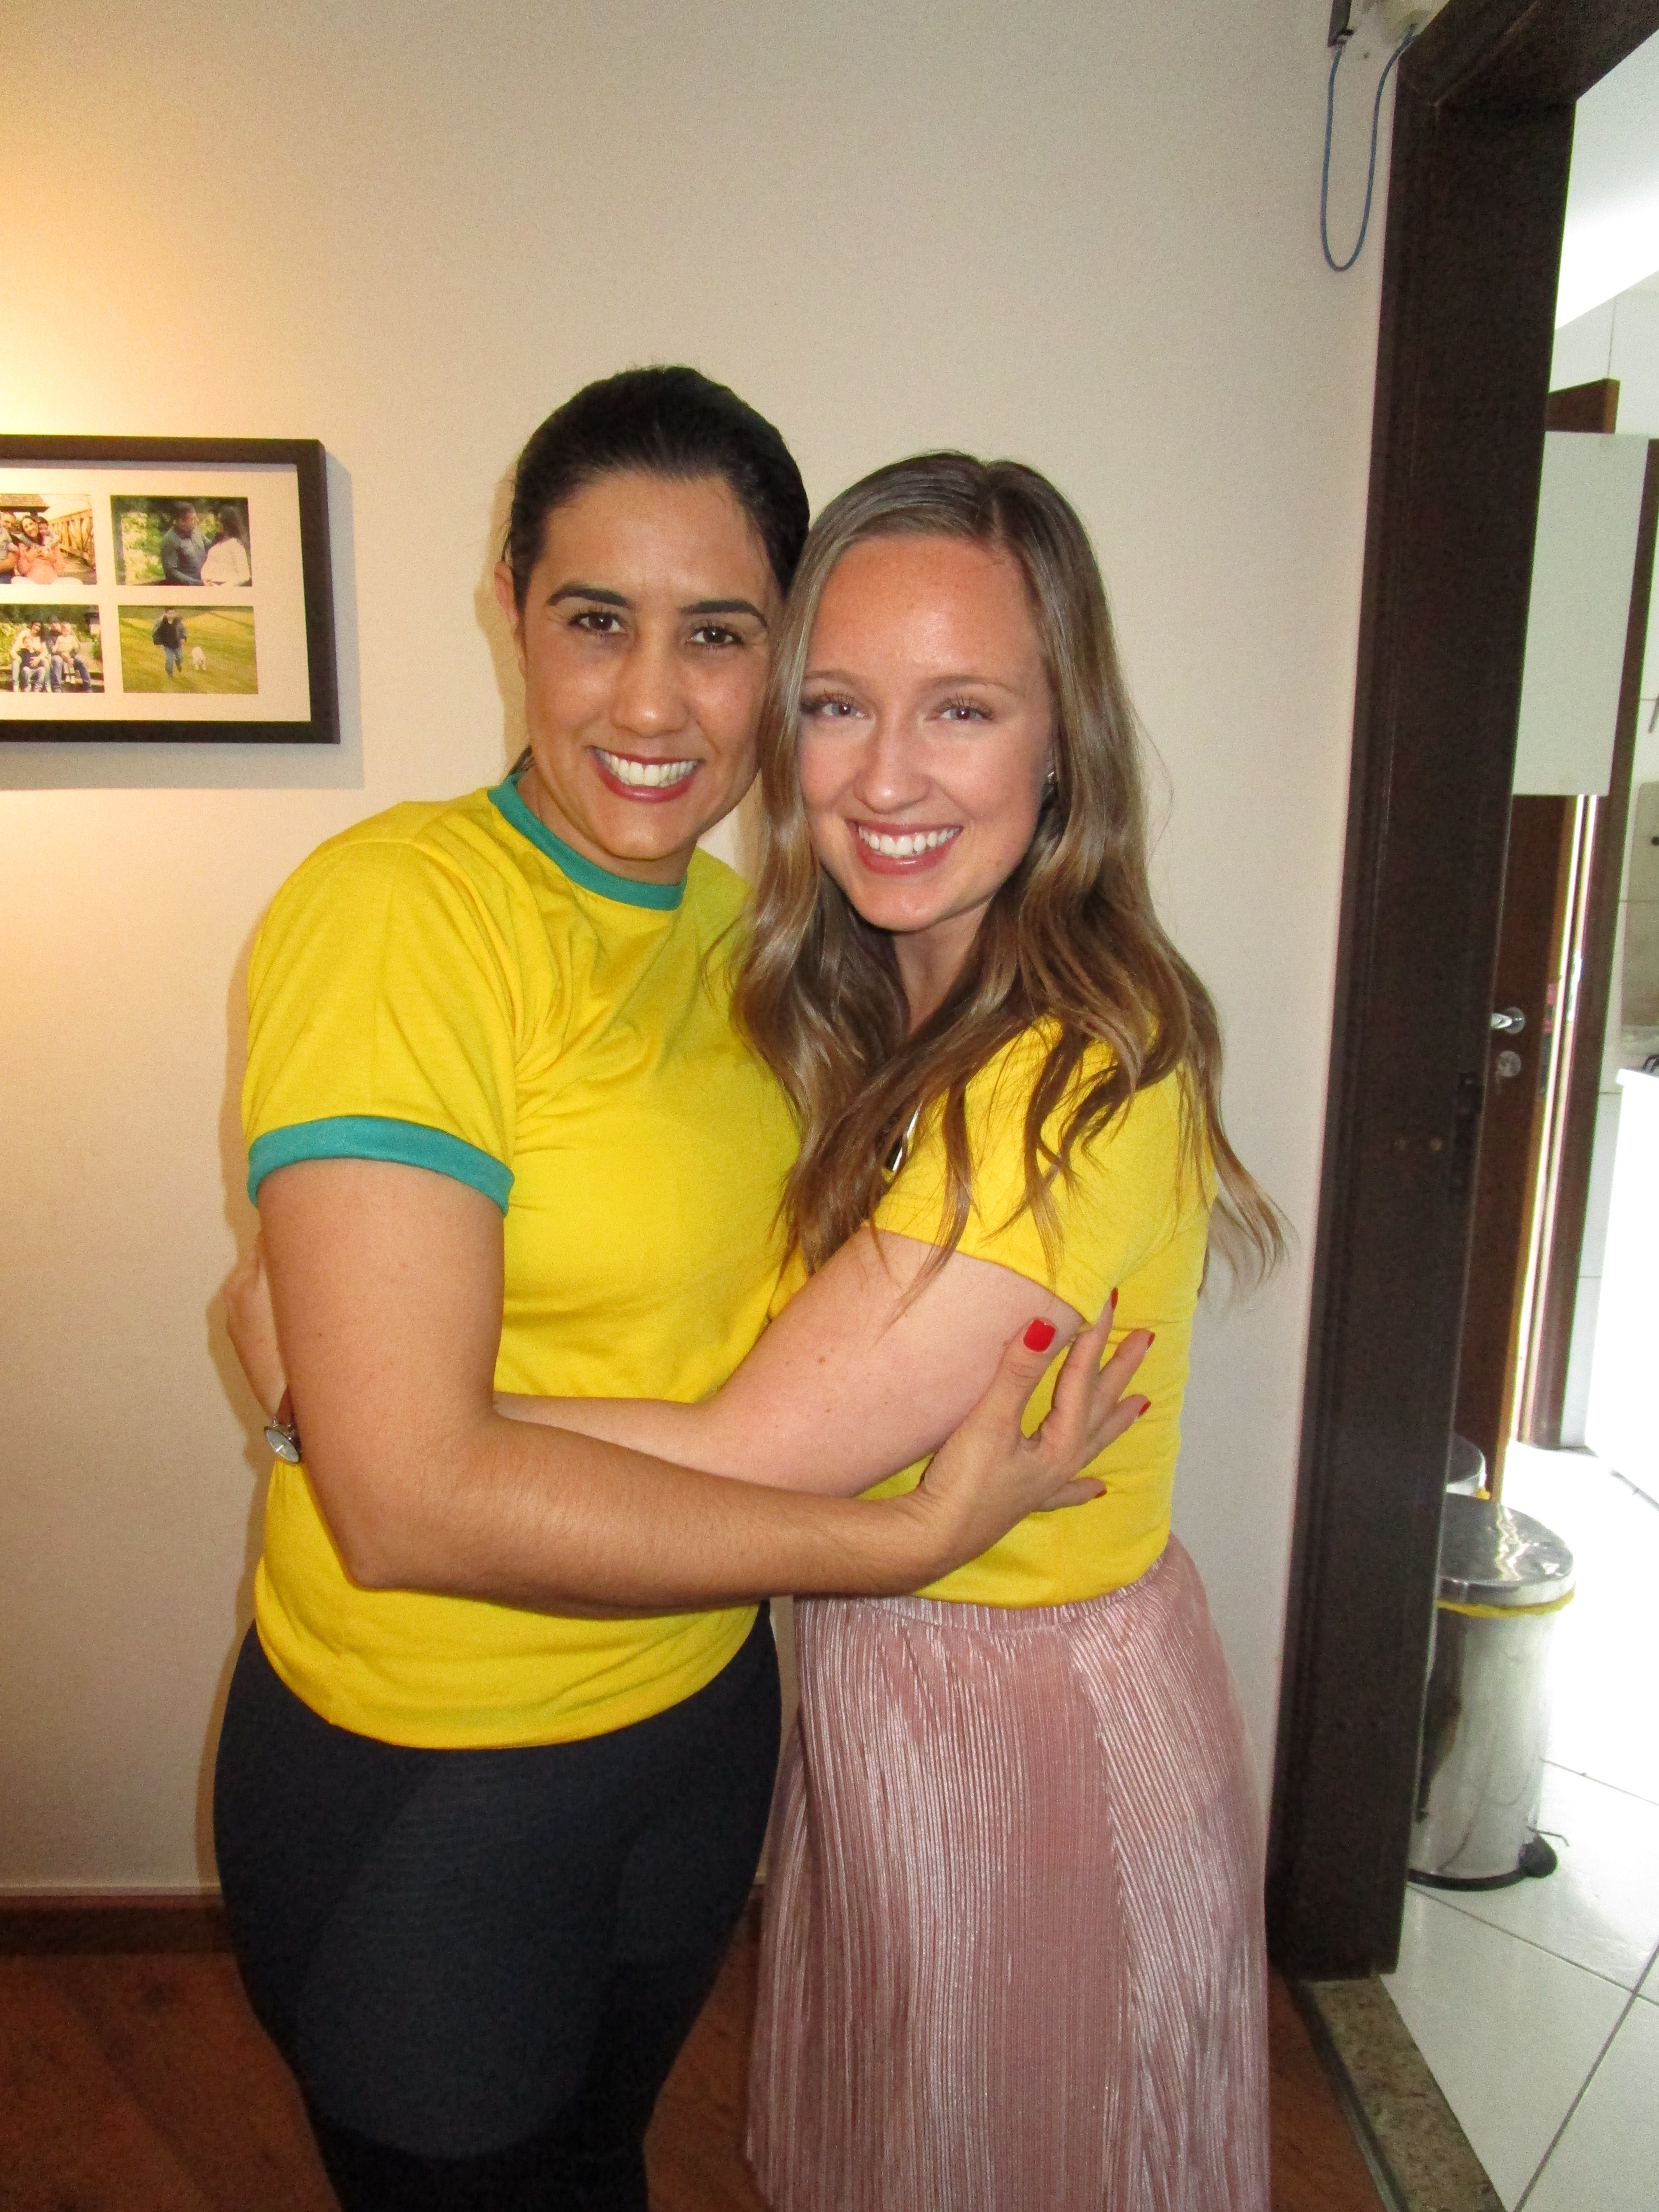 Monique McDown with Andreia Rodrigues. Rodrigues was with McDown every day after the accident.